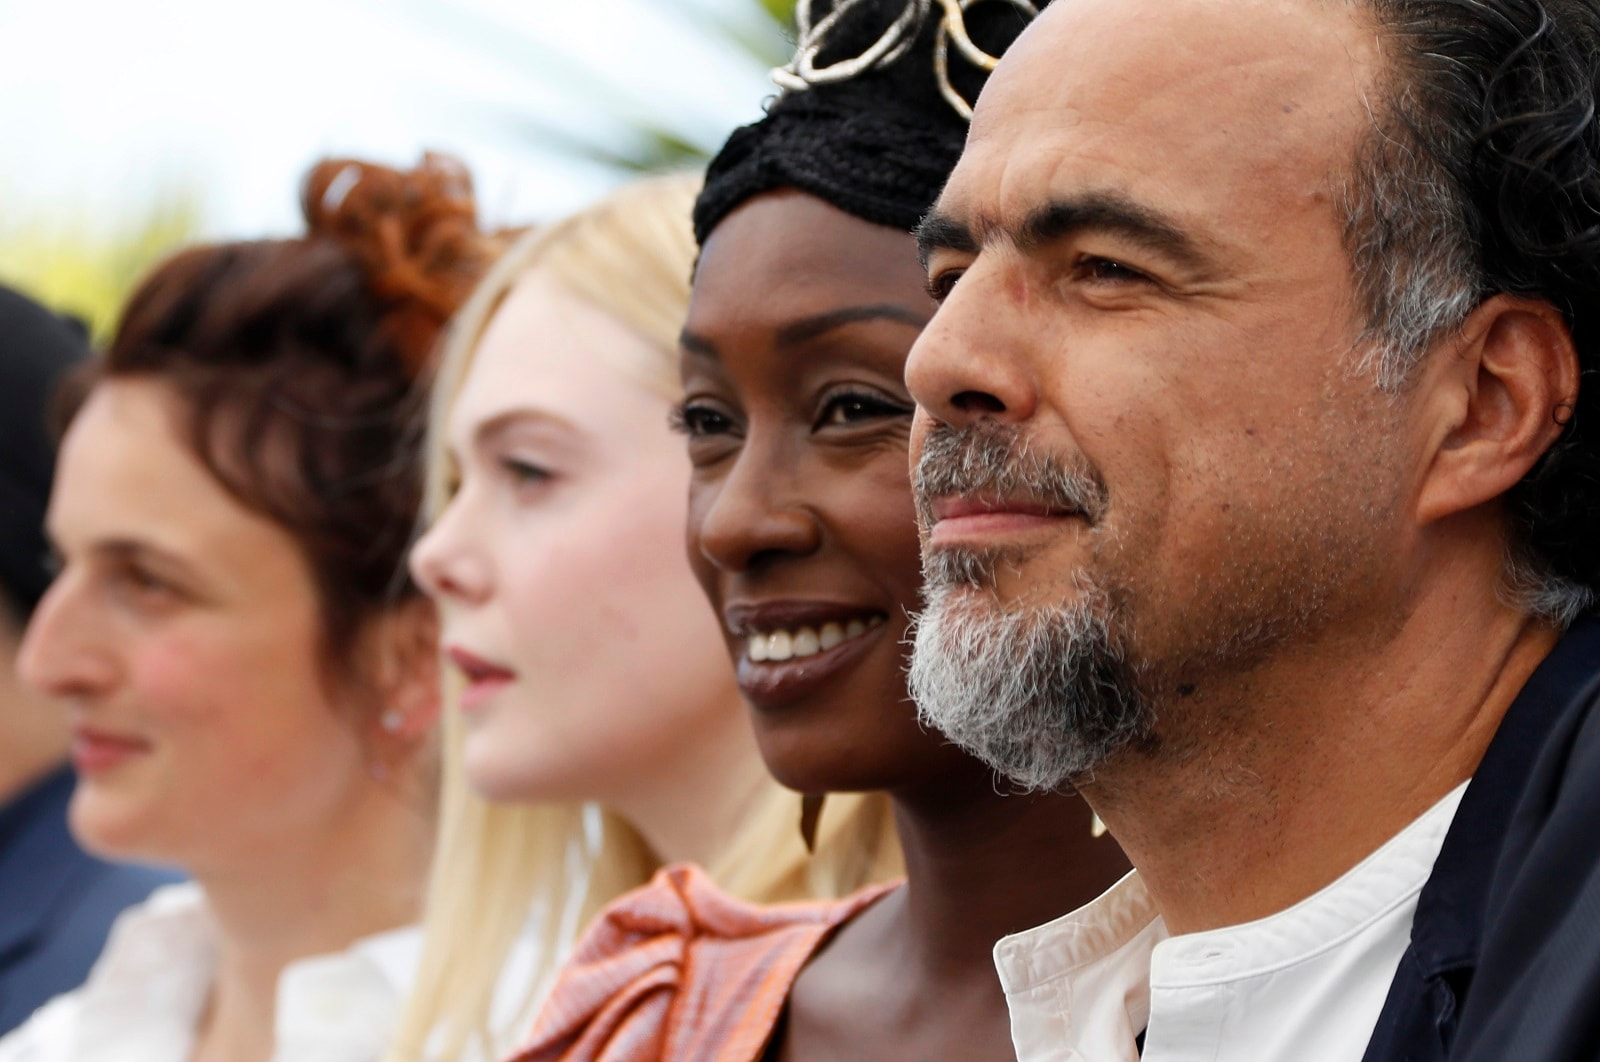 Director Alejandro Gonzalez Inarritu, Jury President of the 72nd Cannes Film Festival, and Jury members Alice Rohrwacher, Elle Fanning and Maimouna N'Diaye pose in Cannes, France, May 14, 2019. REUTERS/Eric Gaillard